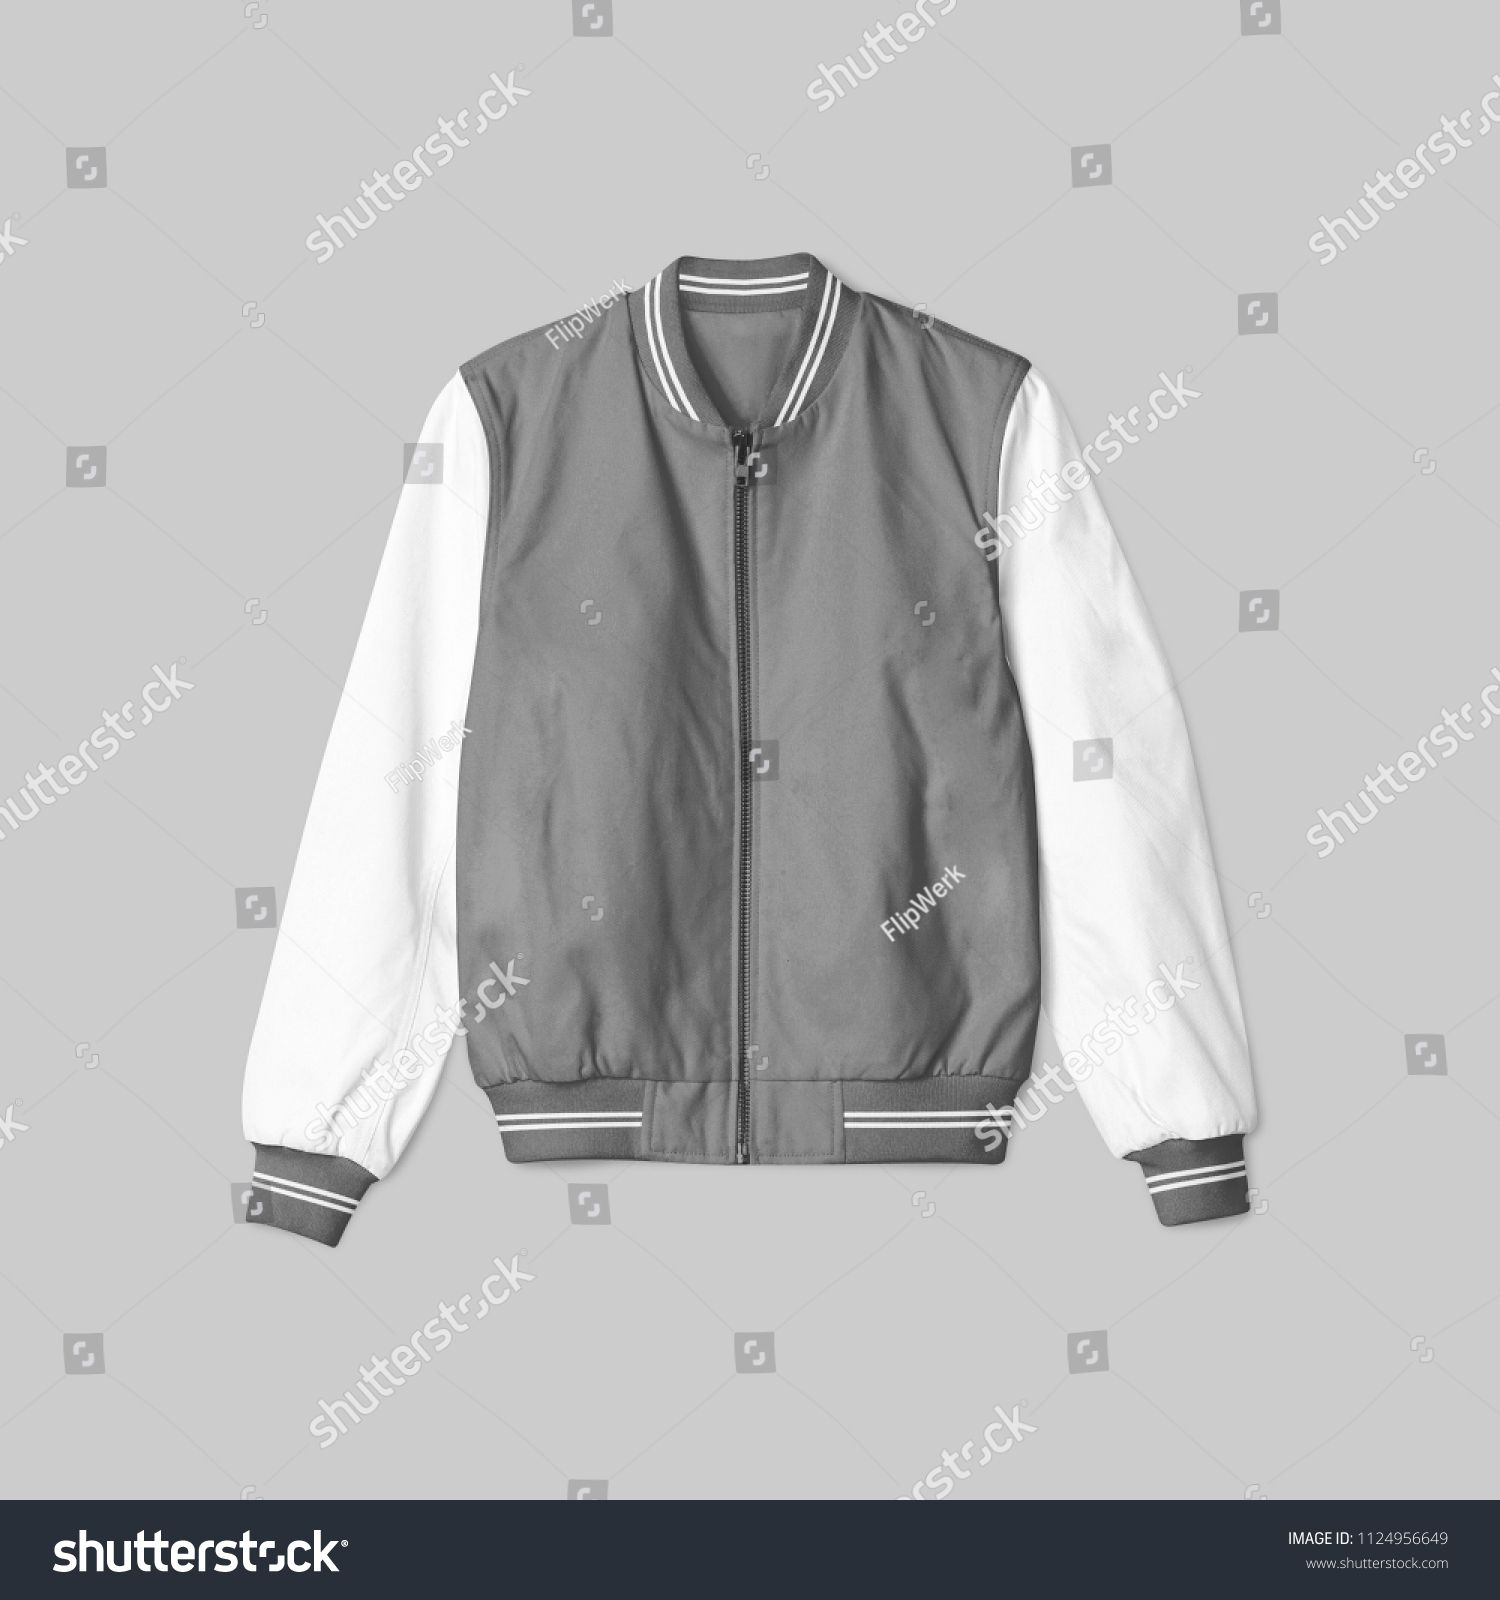 Blank Jacket Satin Baseball Grey And White Color On Grey Background For Mockup Template Isolated In Front View Baseball Grey And White Jackets Gray Background [ 1600 x 1500 Pixel ]